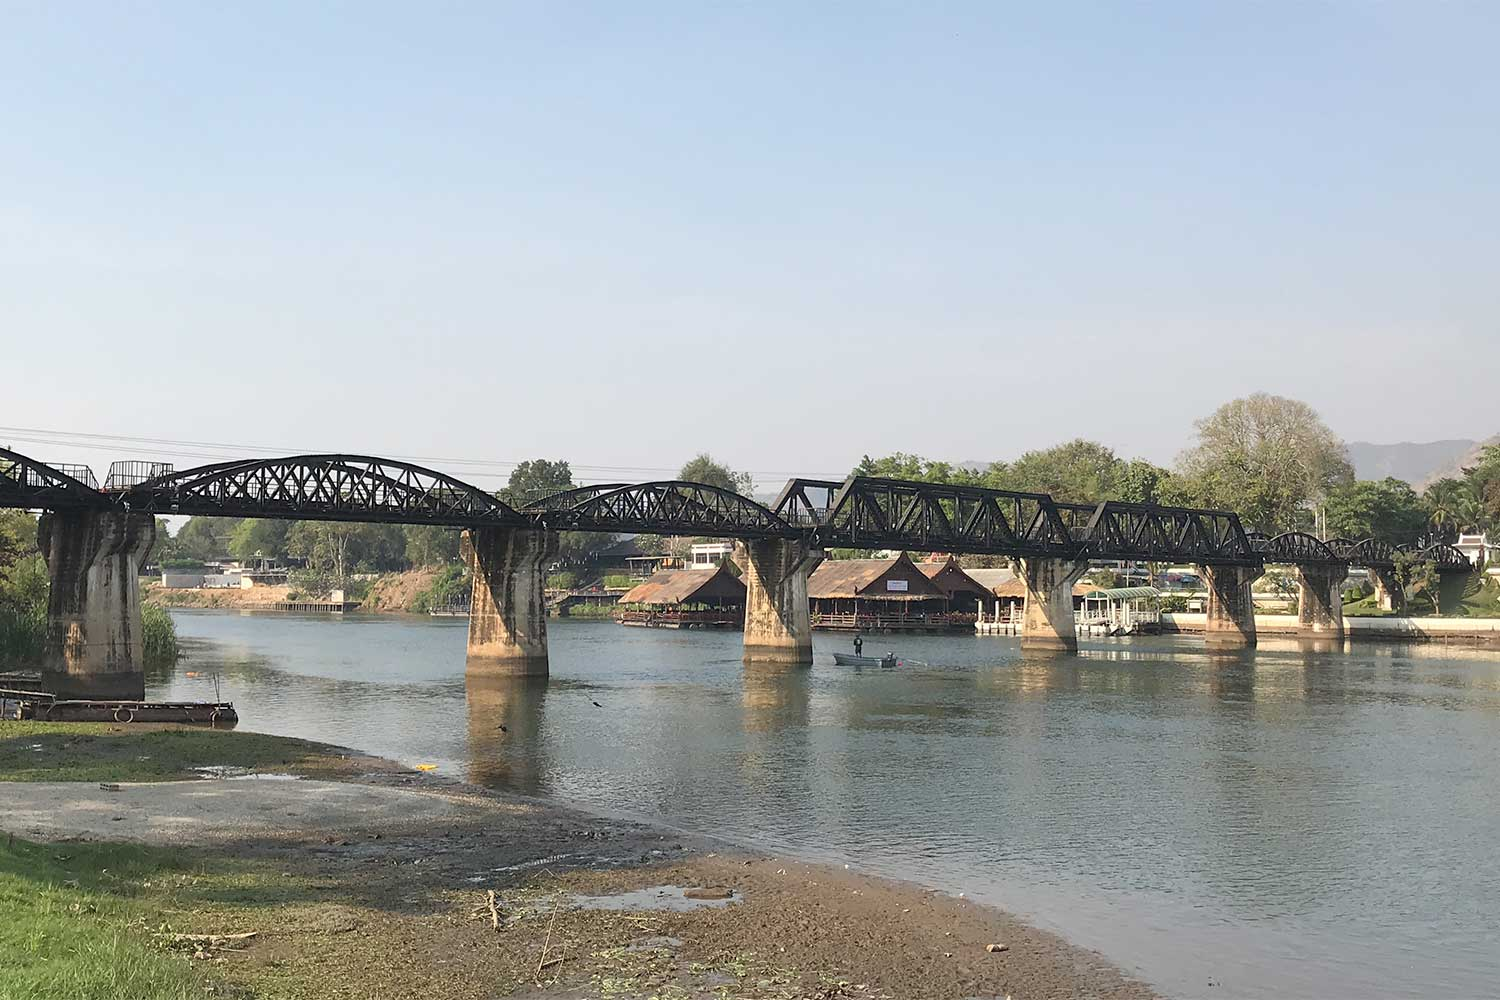 River Kwai bridge vendors bemoan lack of tourists